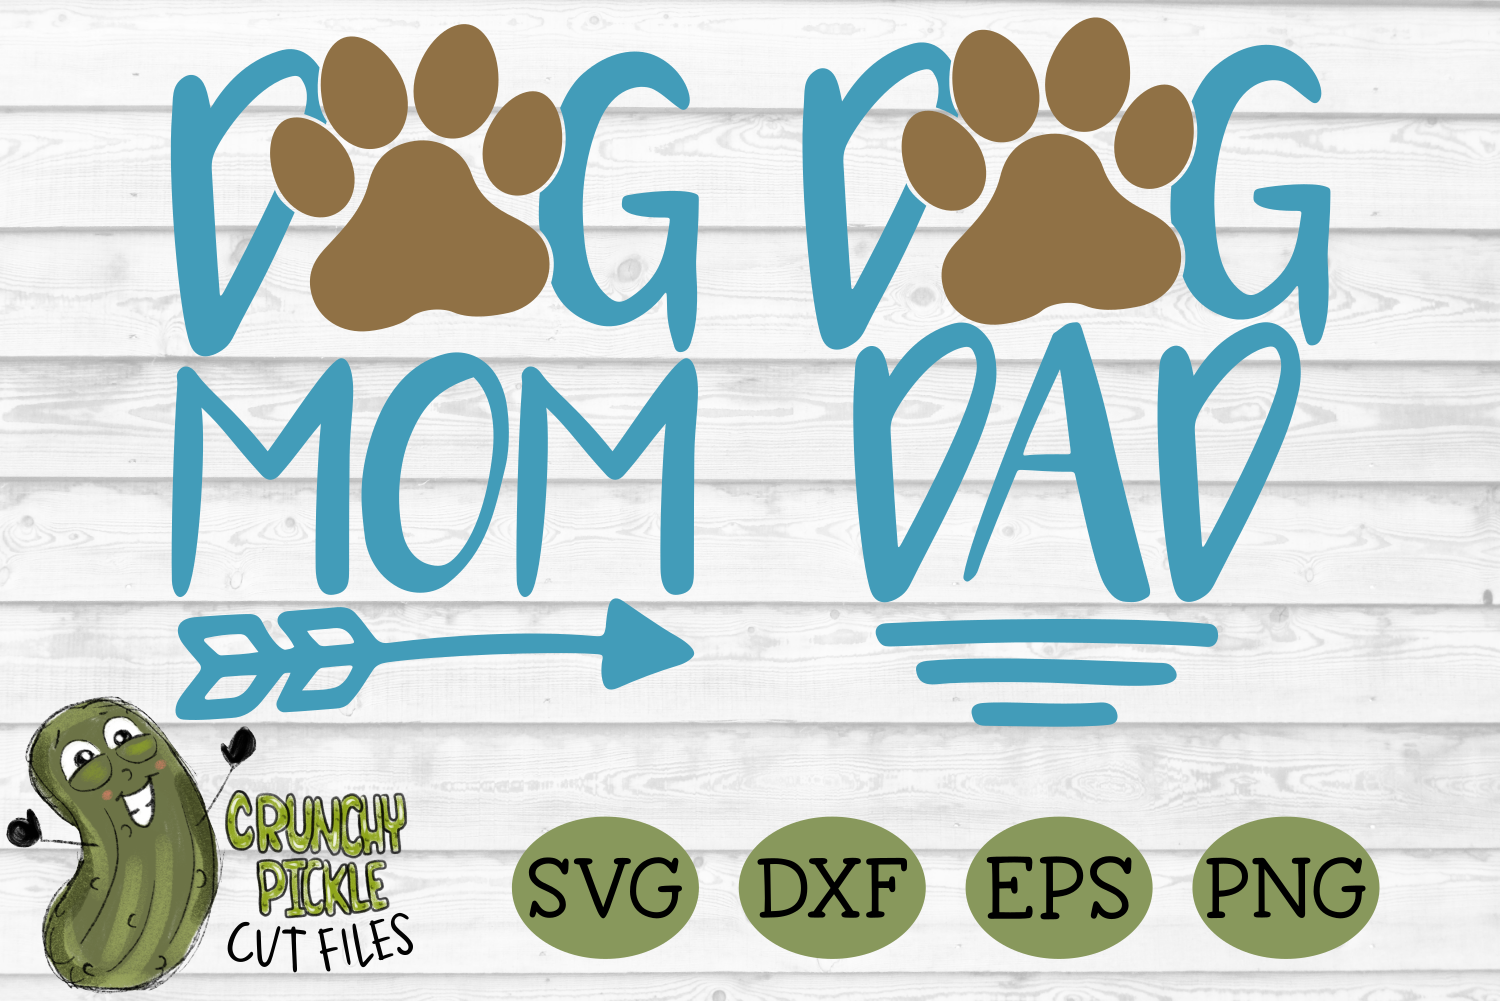 Dog Mom And Dog Dad Matching Svg By Crunchy Pickle Thehungryjpeg Com